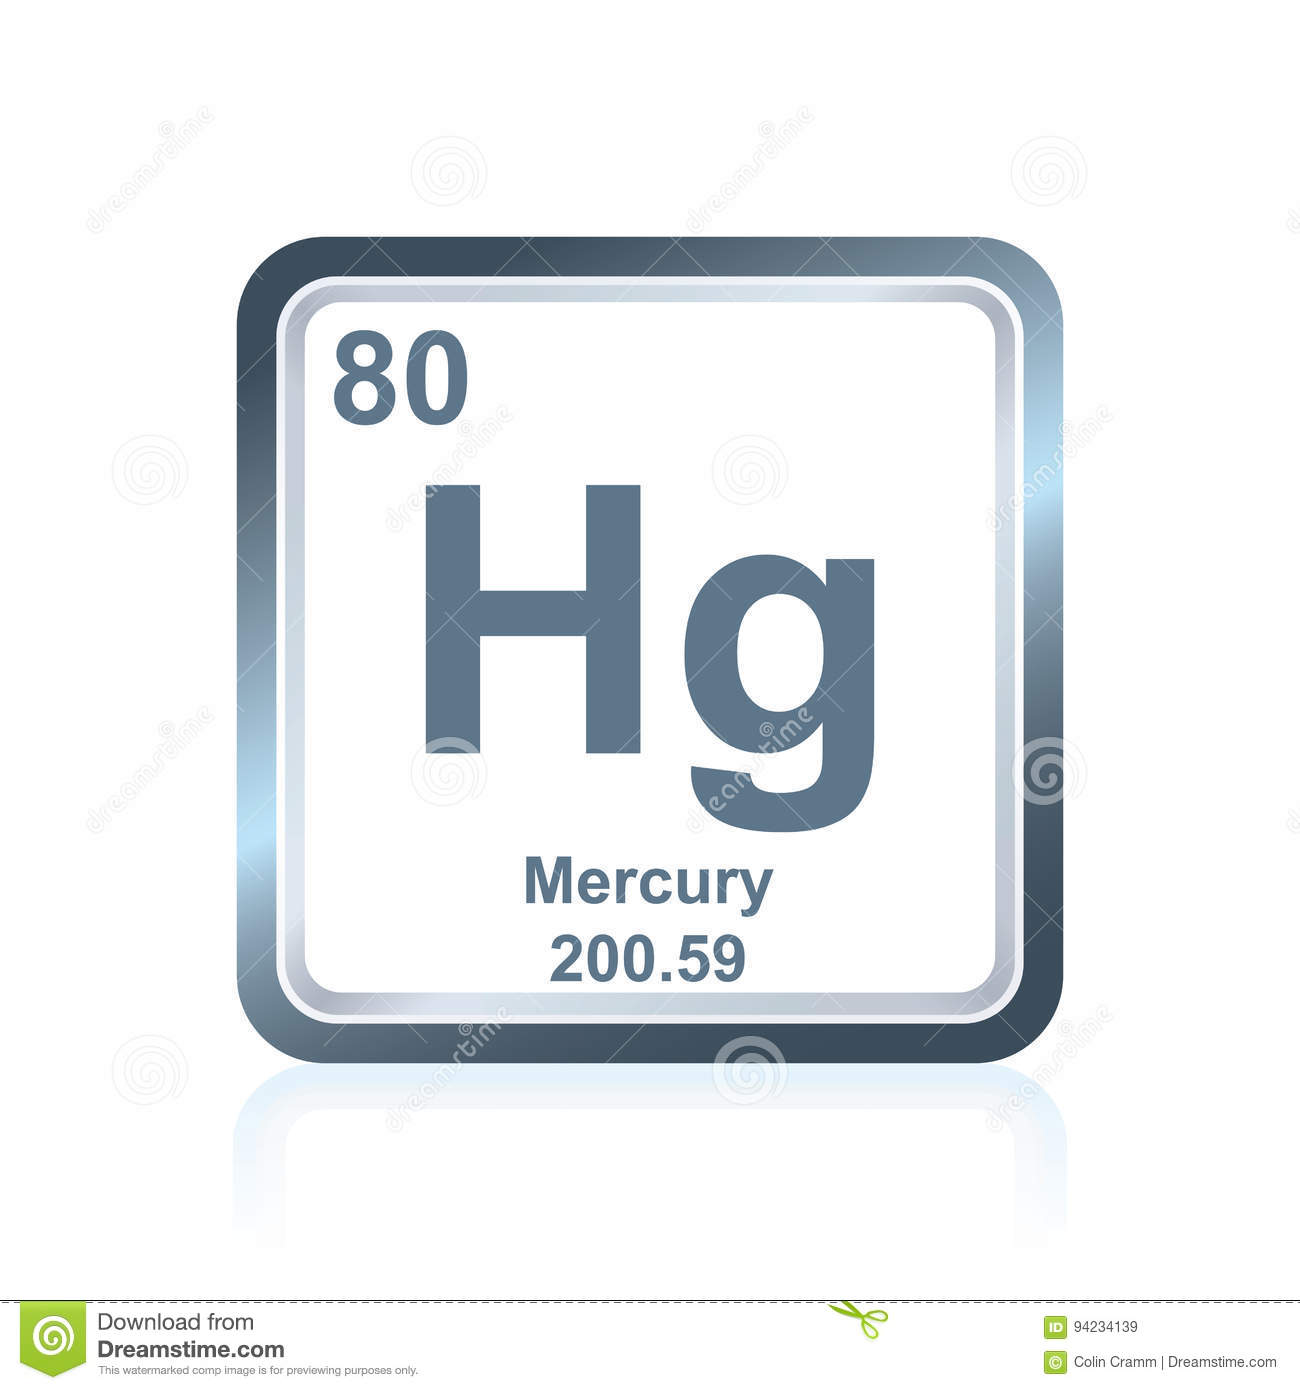 Tavola Periodica Hg Chemical Element Mercury From The Periodic Table Stock